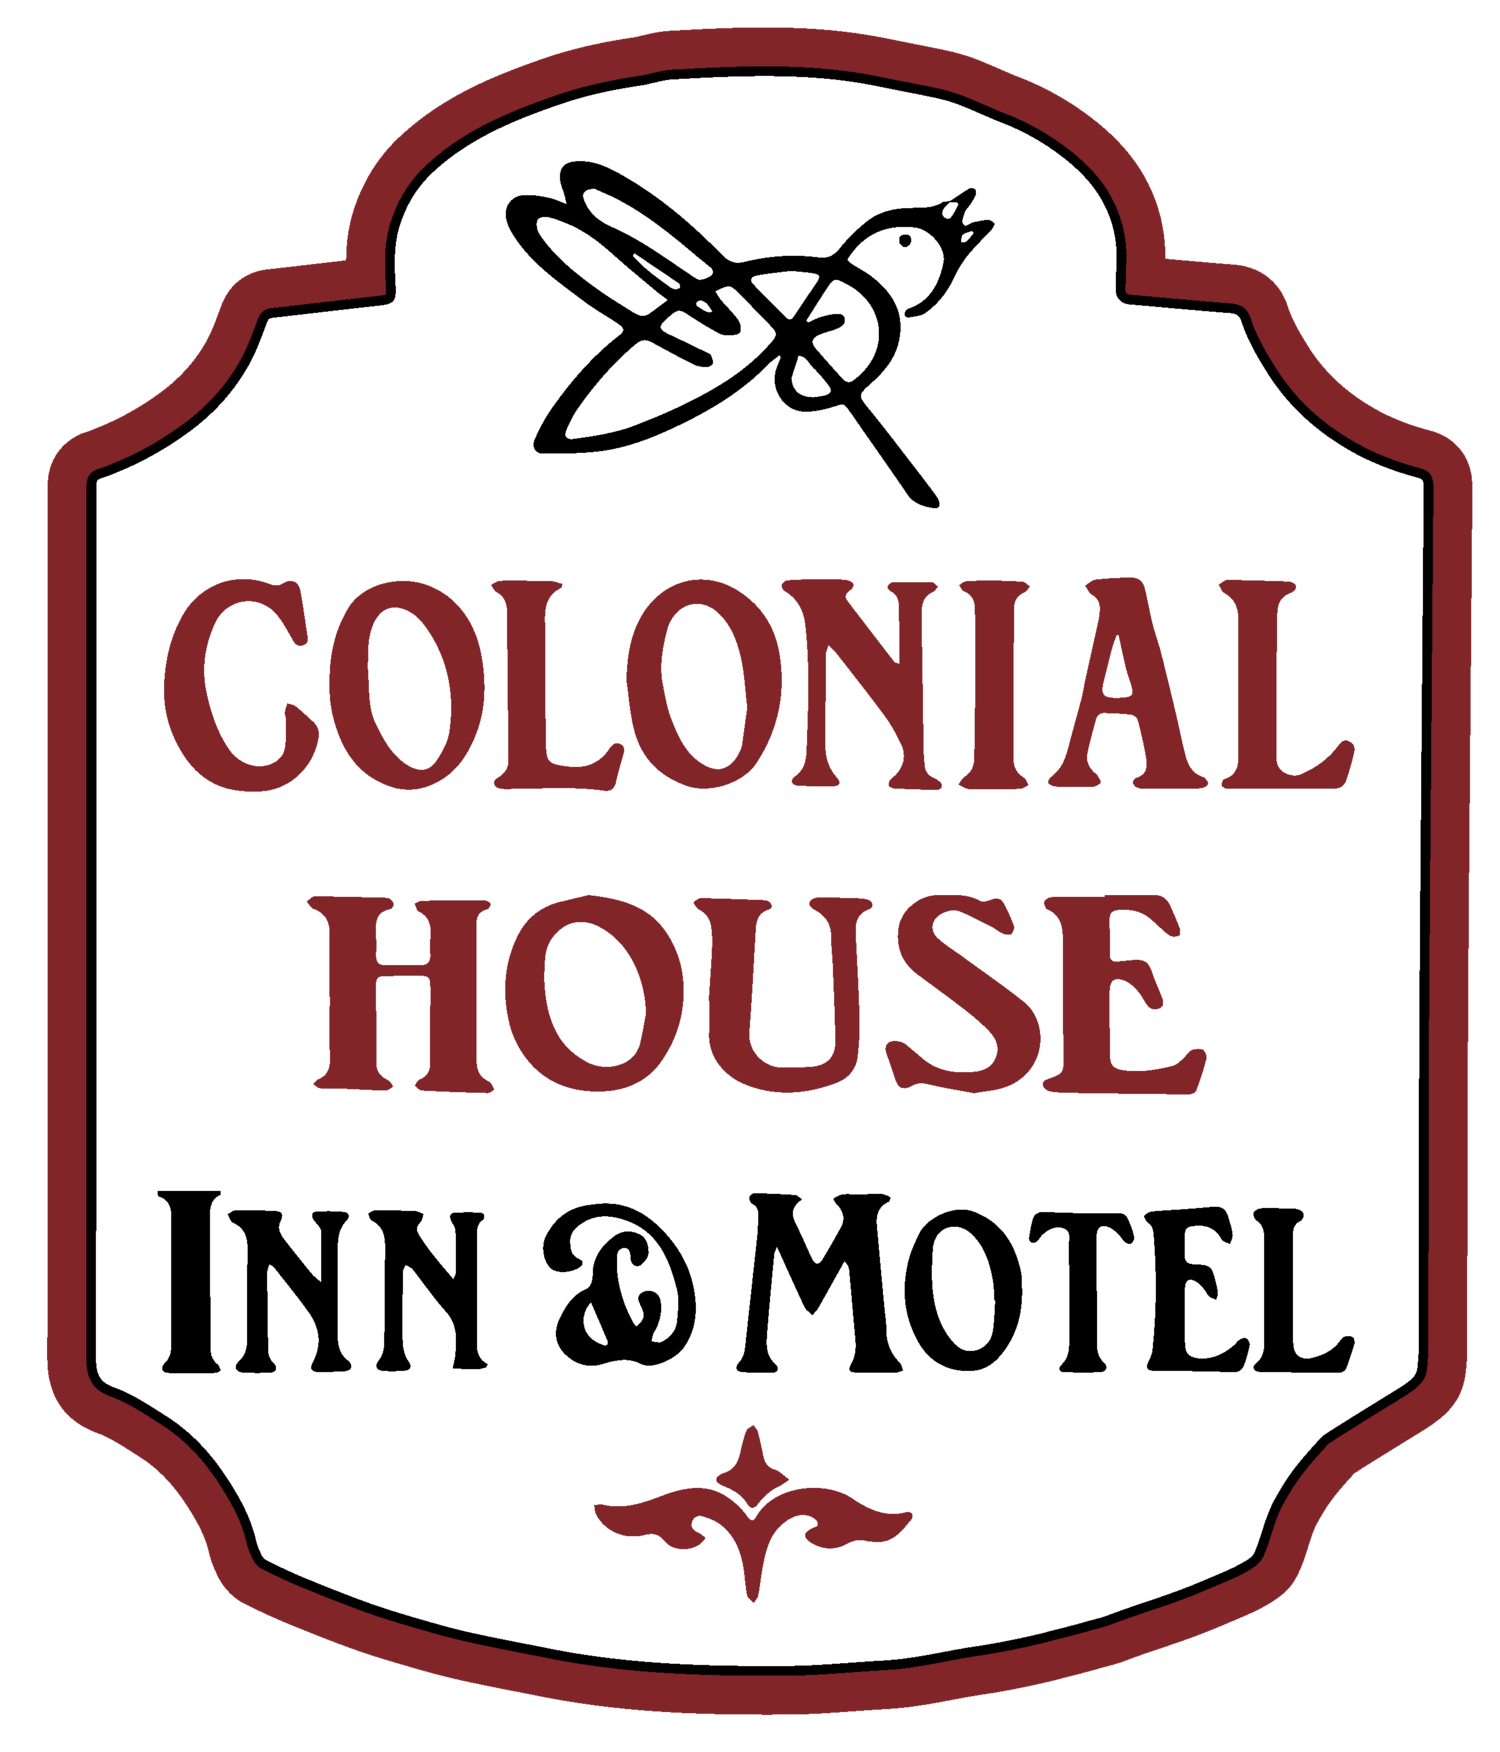 Colonial House Inn & Motel